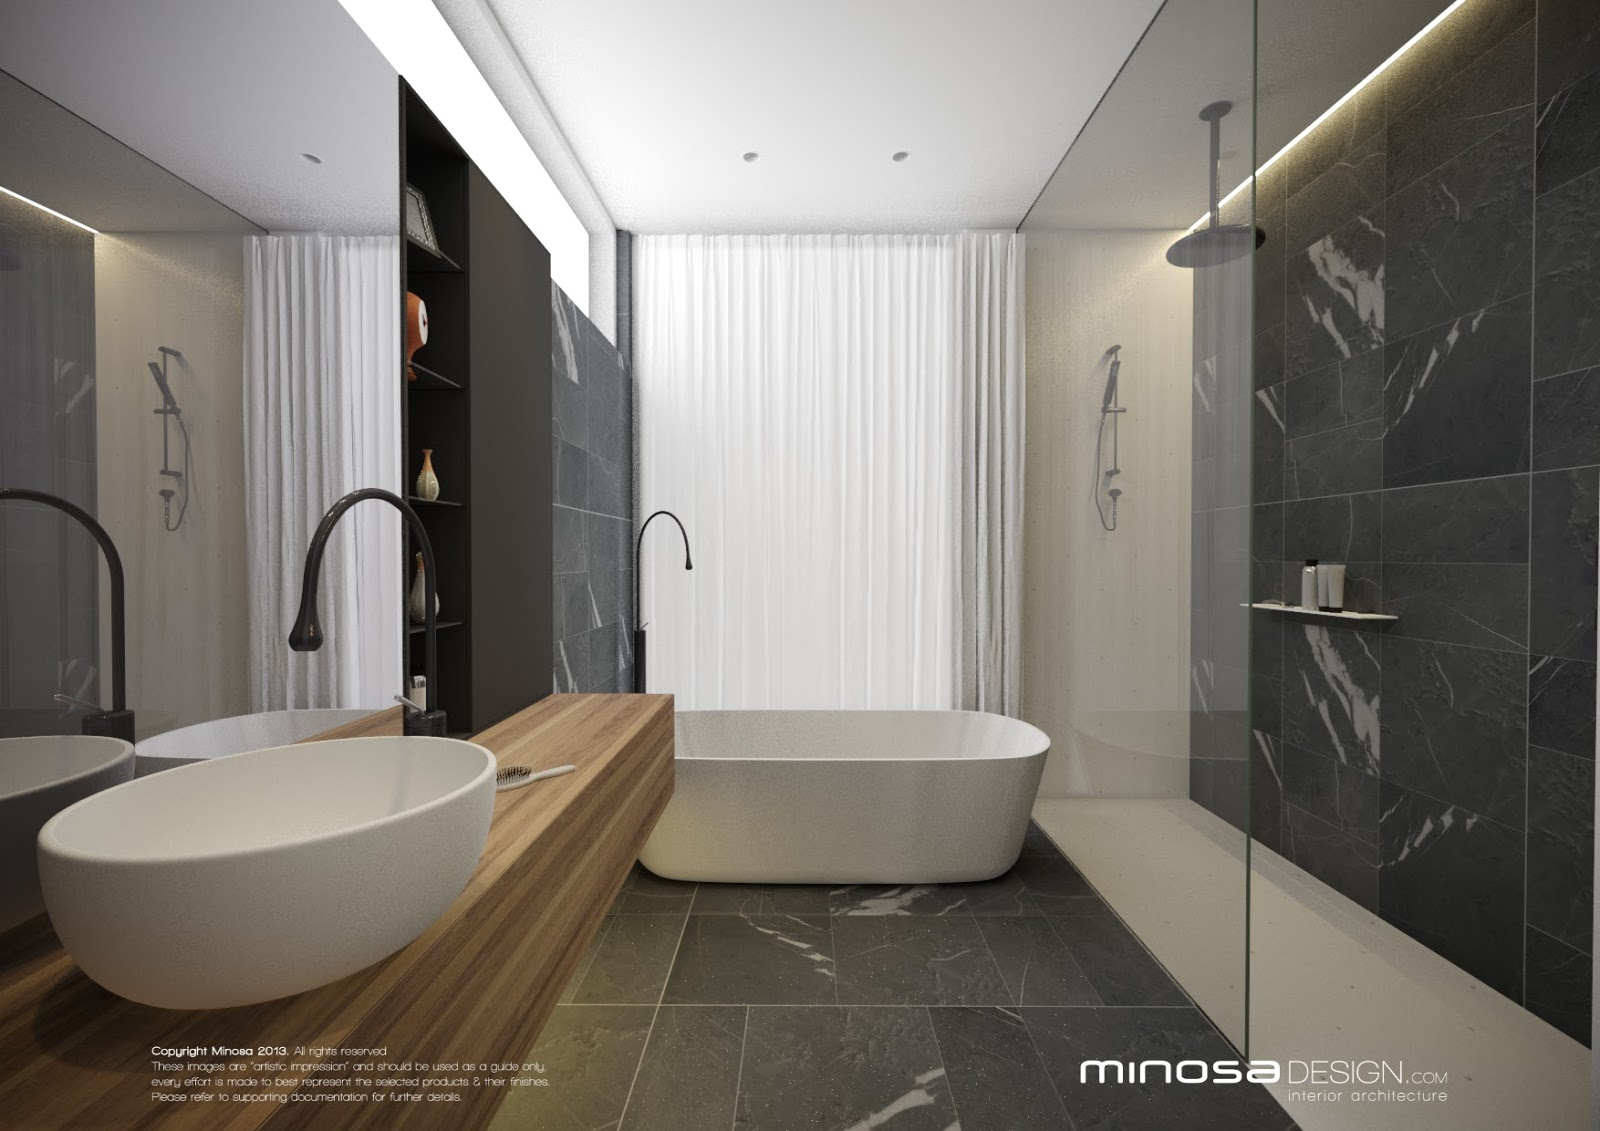 Minosa: Modern Bathroom Design to share.